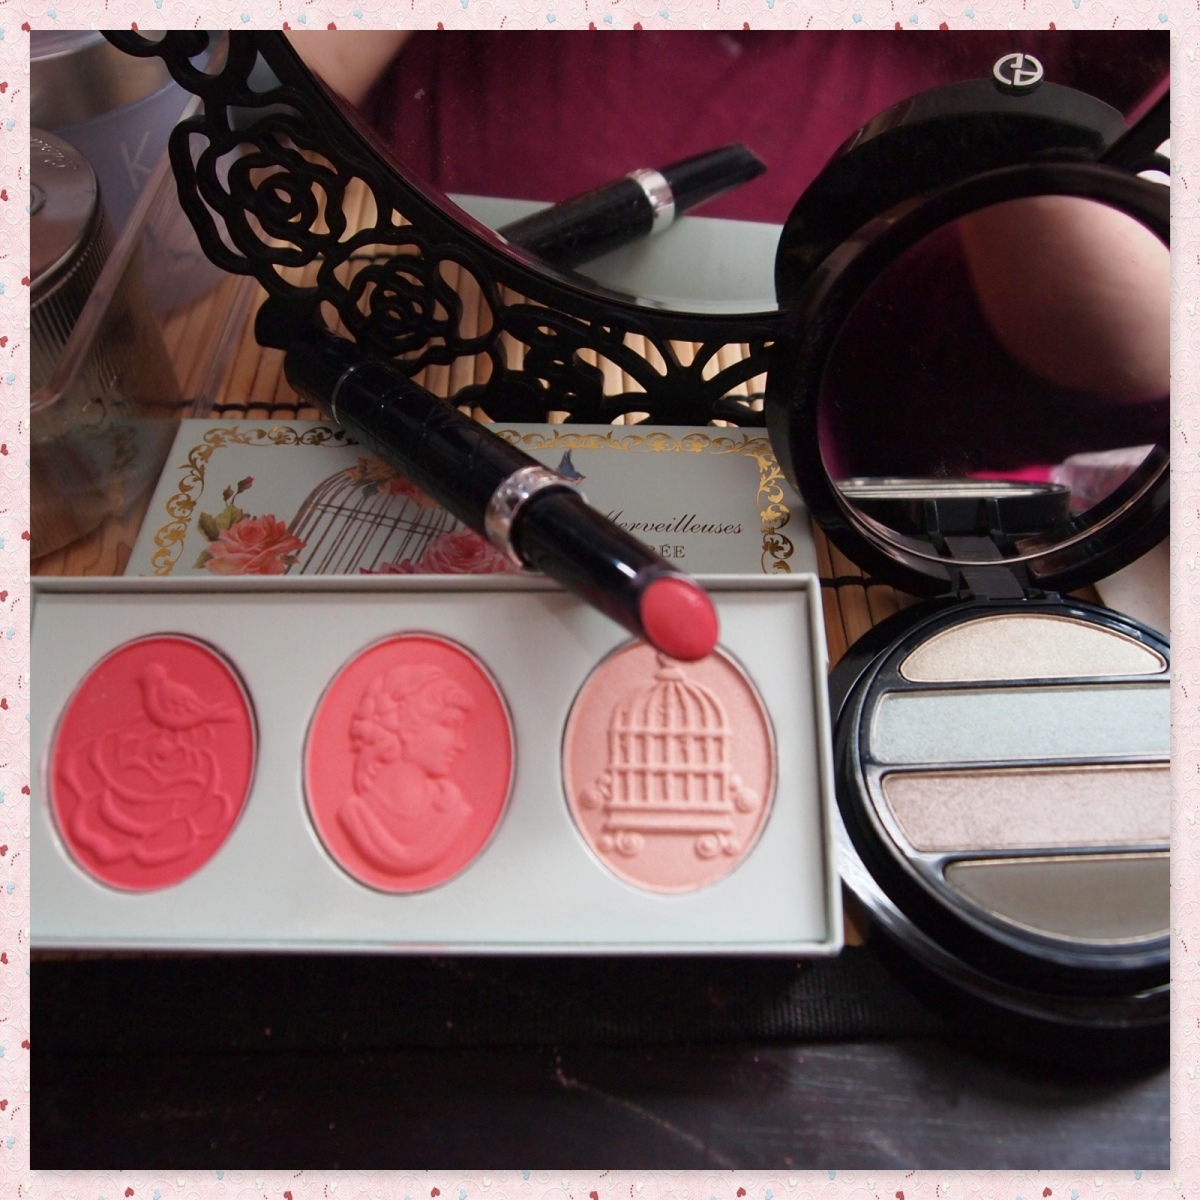 Armani Eyes to Kill Pantelleria, Les Merveilleuses de Laduree Blush Trio FOTD